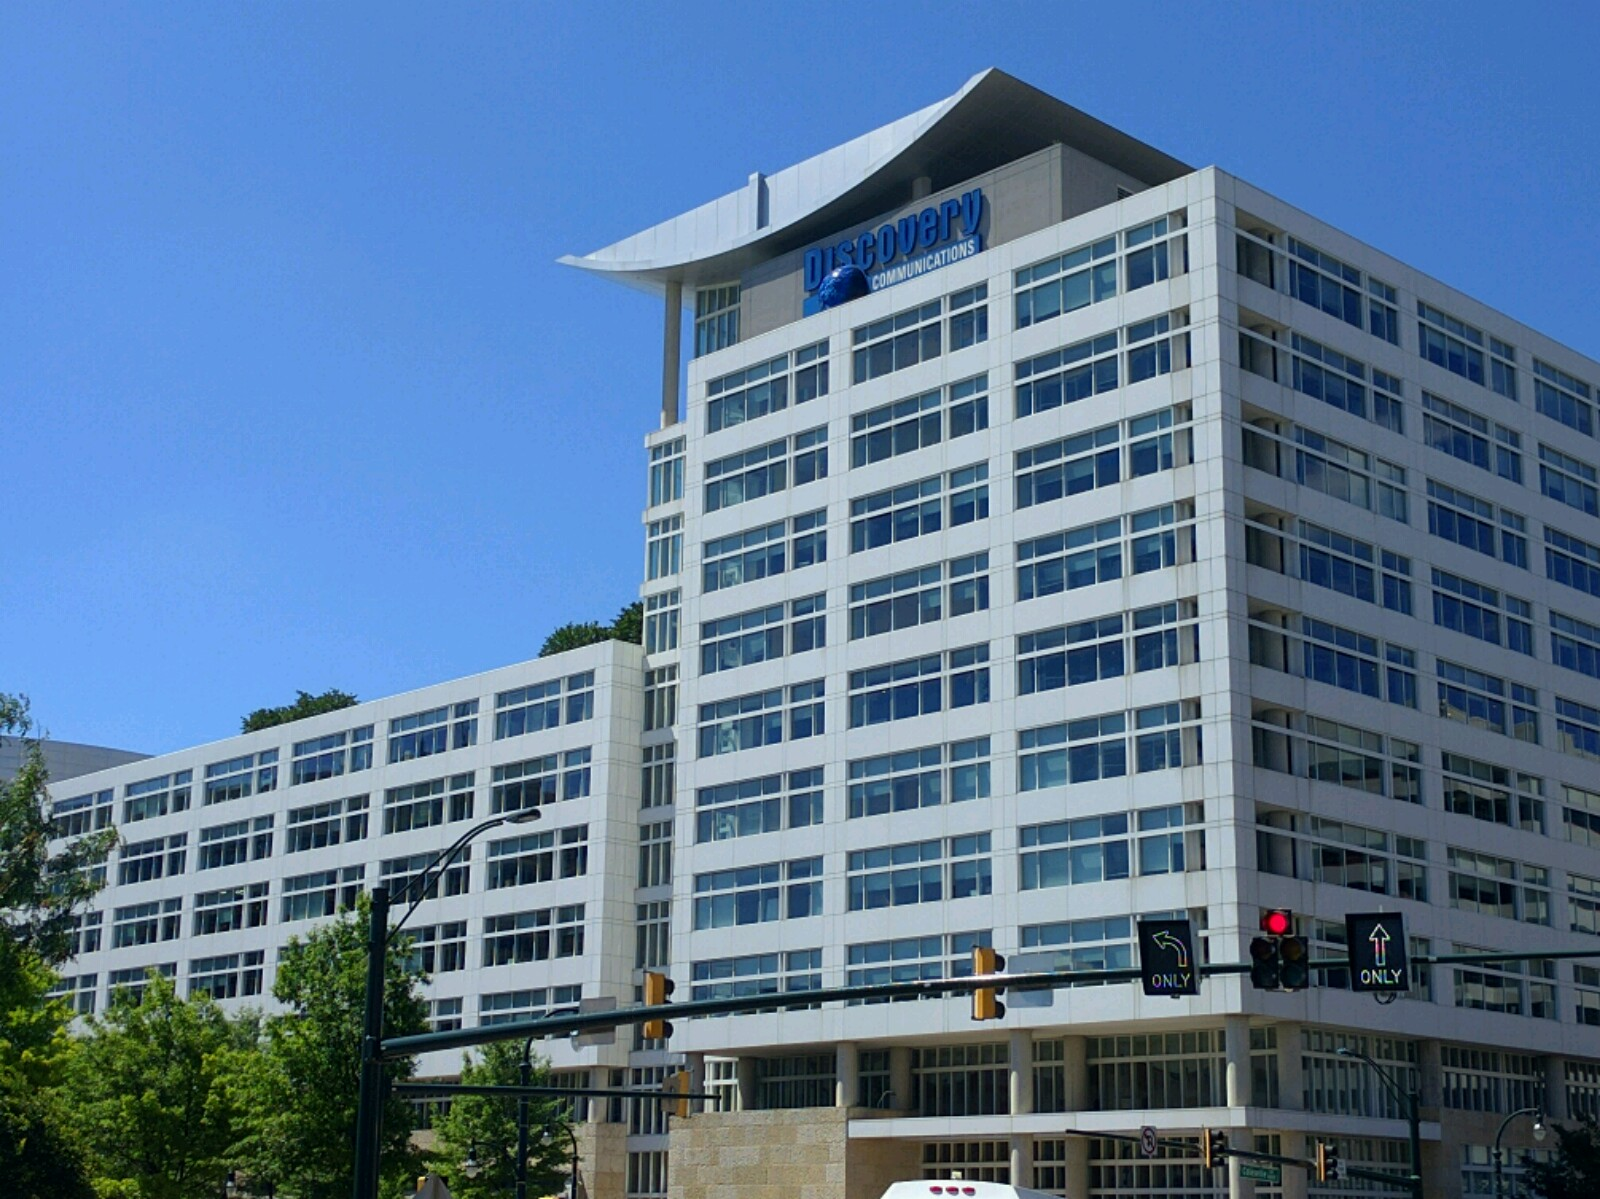 Discovery Communications' corporate headquarters in Silver Spring, Maryland.